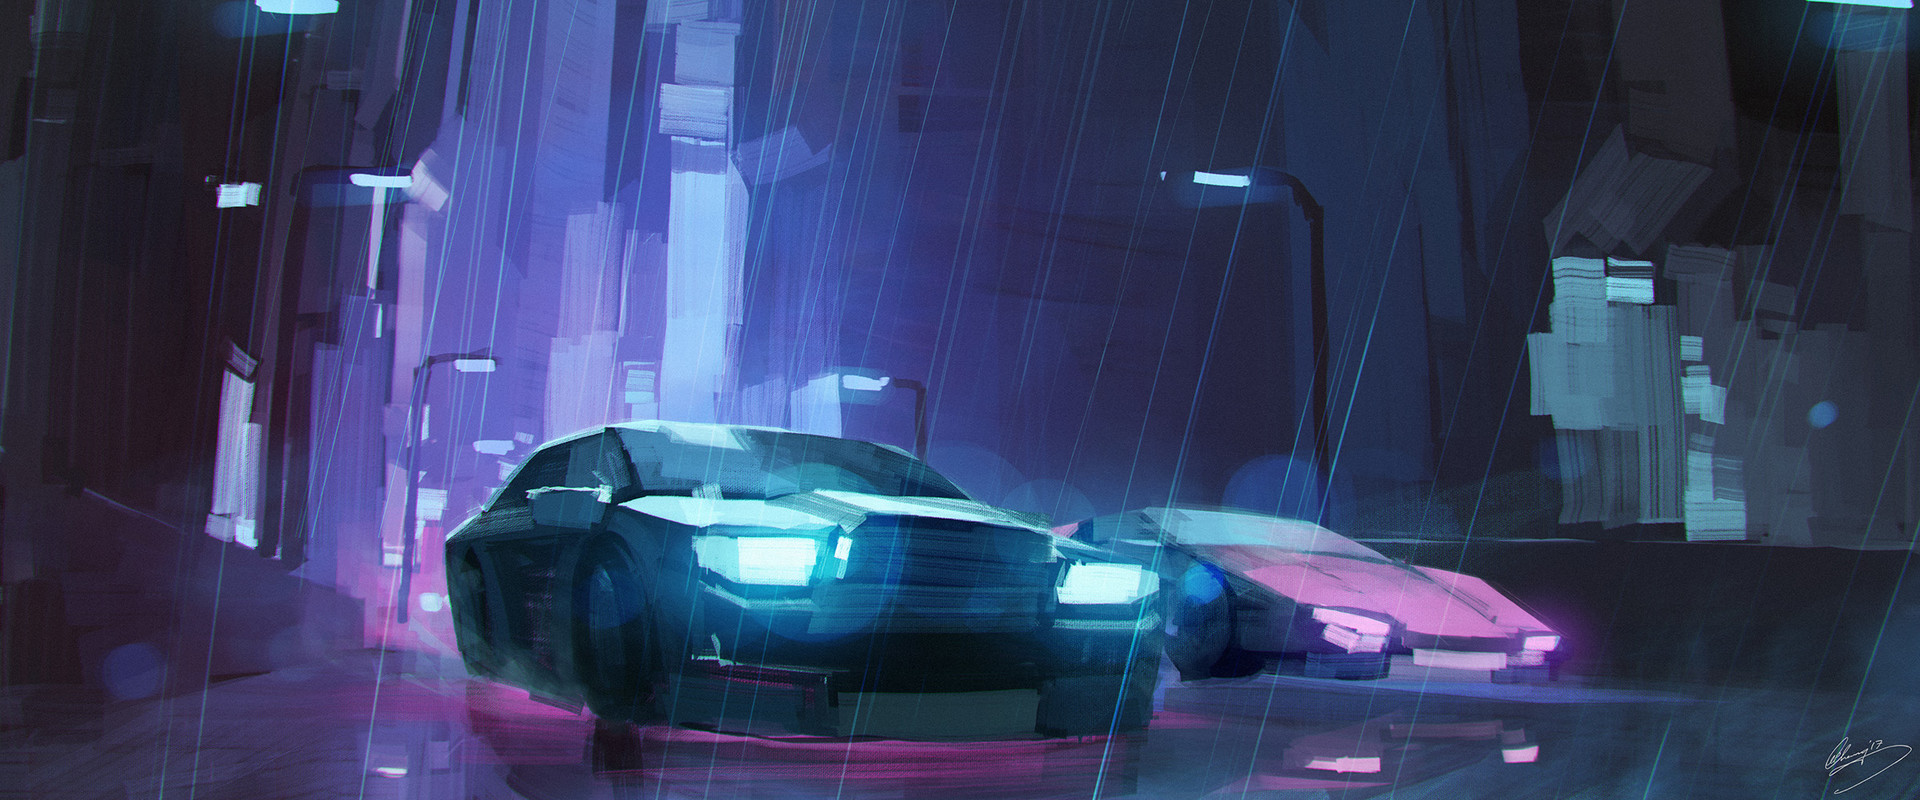 Lap pun cheung cinematic neon racers online